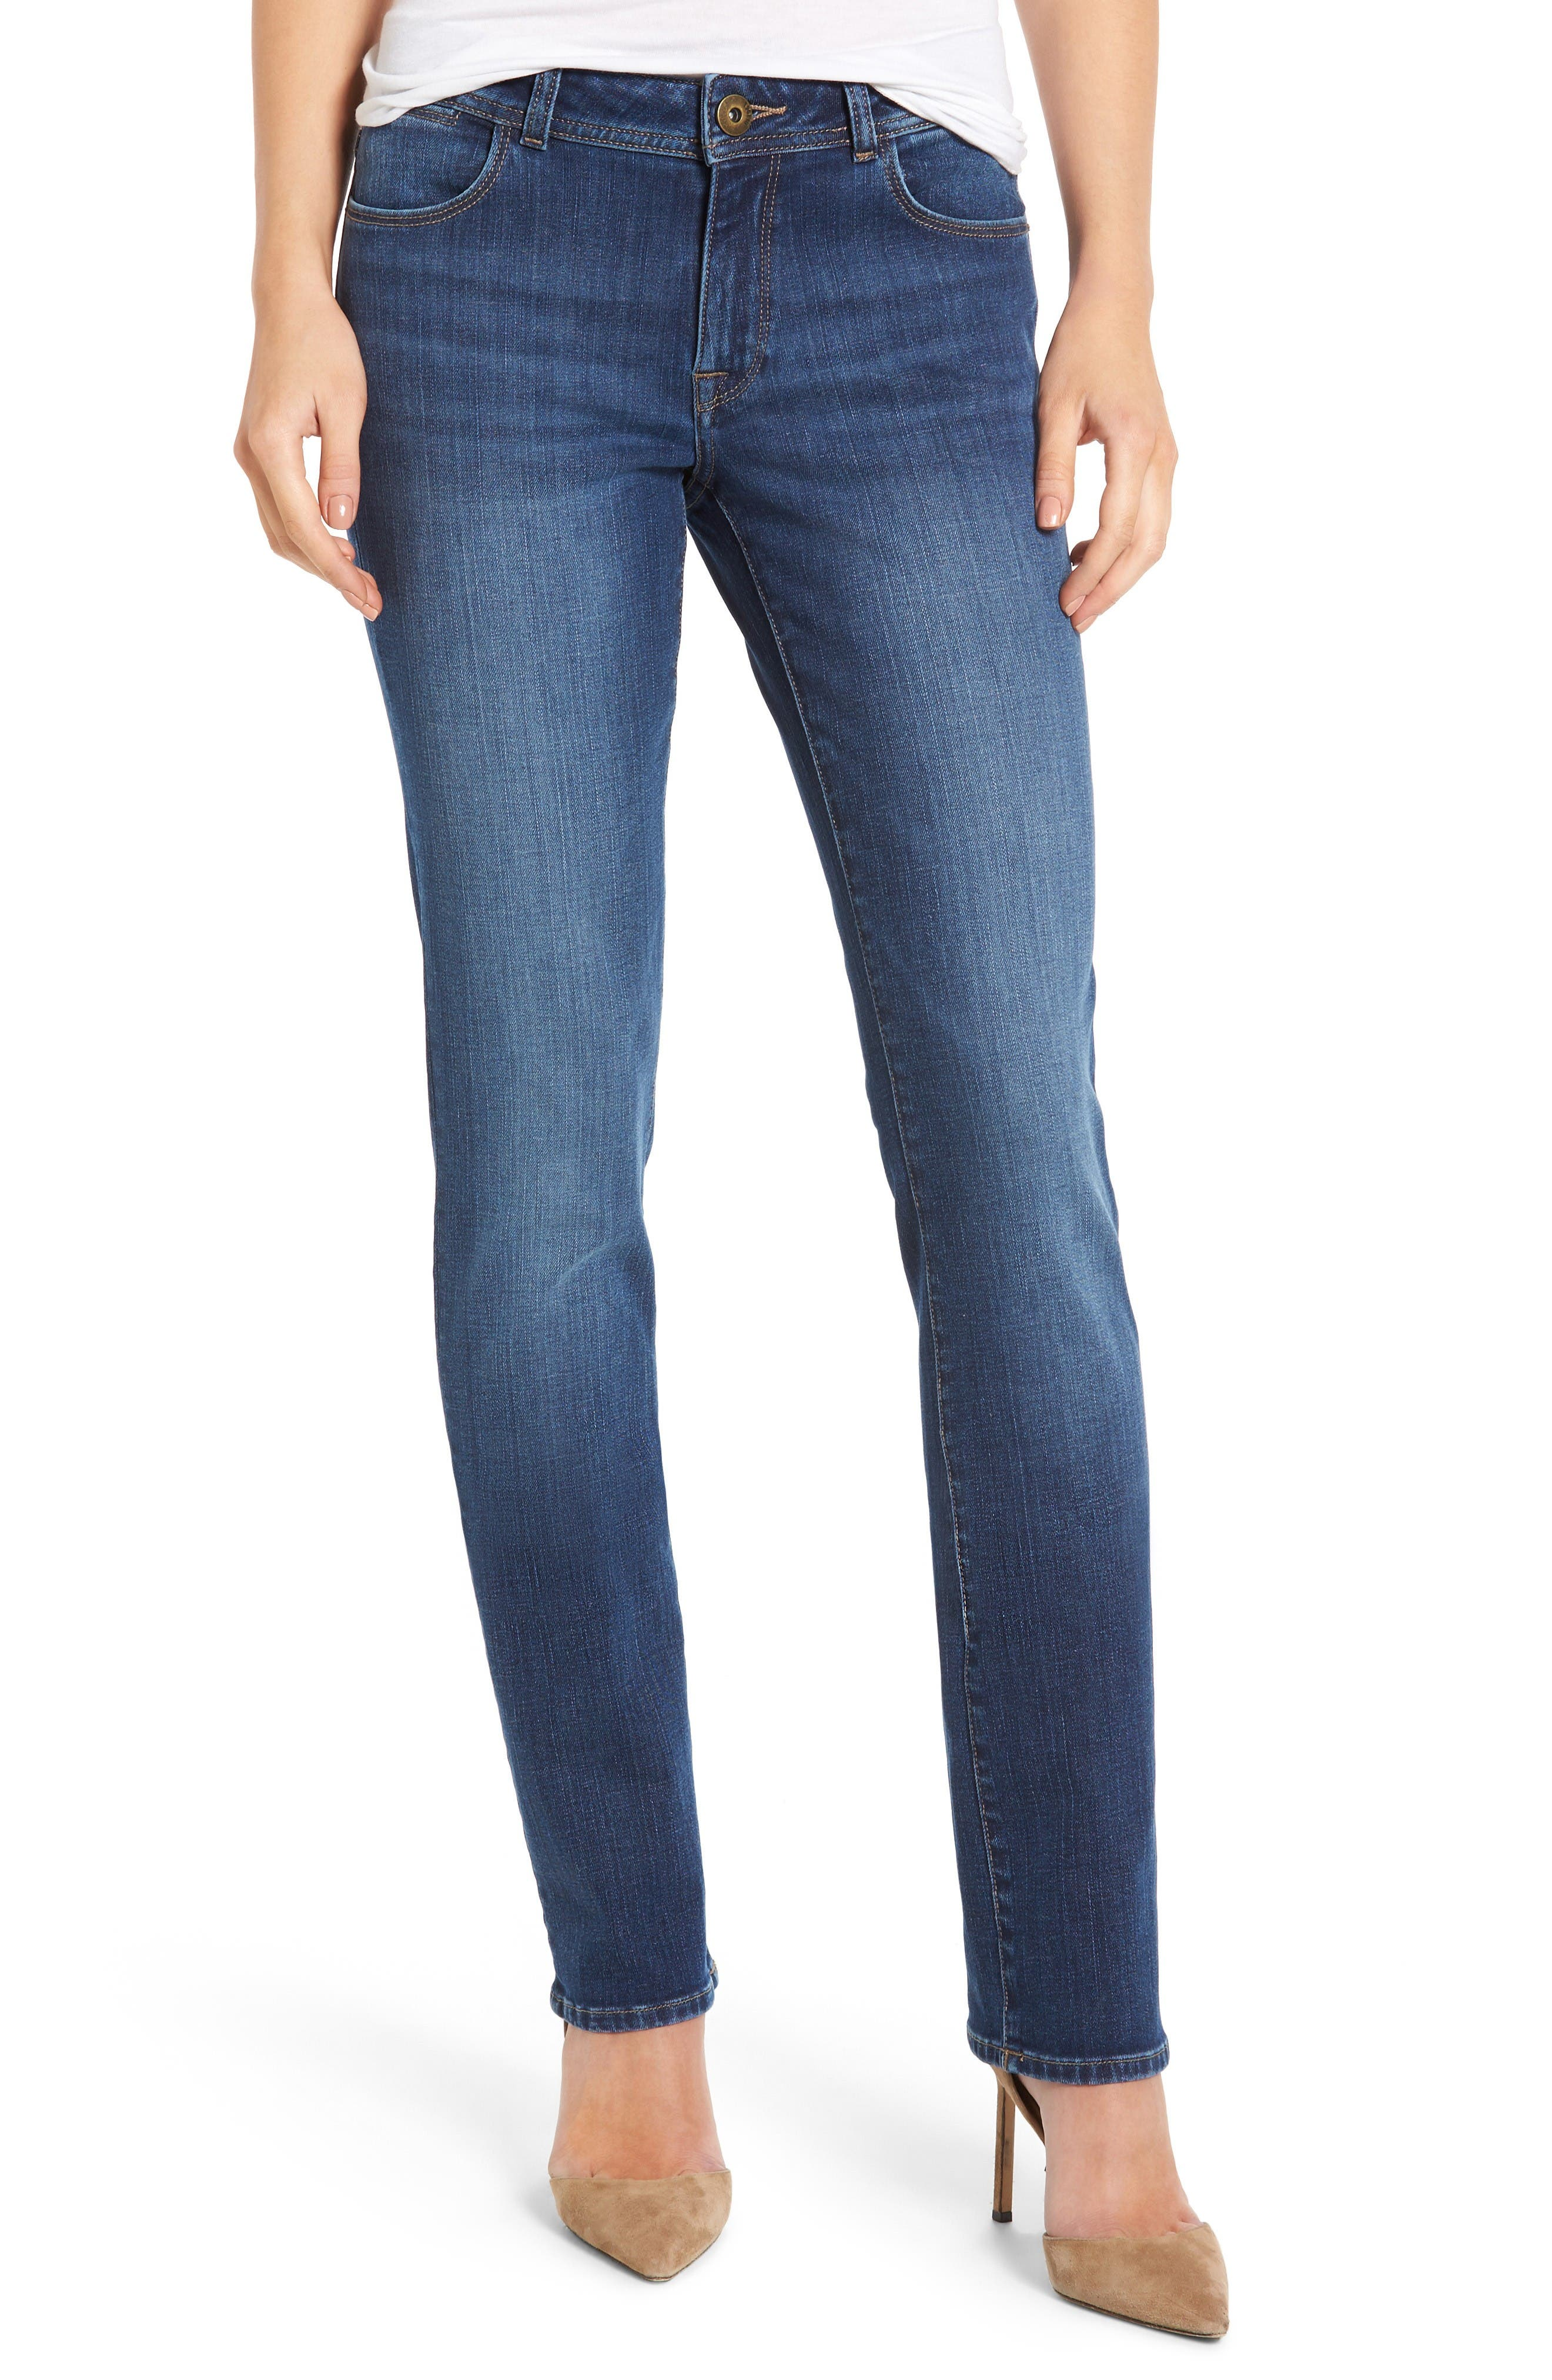 Coco Curvy Straight Leg Jeans,                         Main,                         color, Pacific